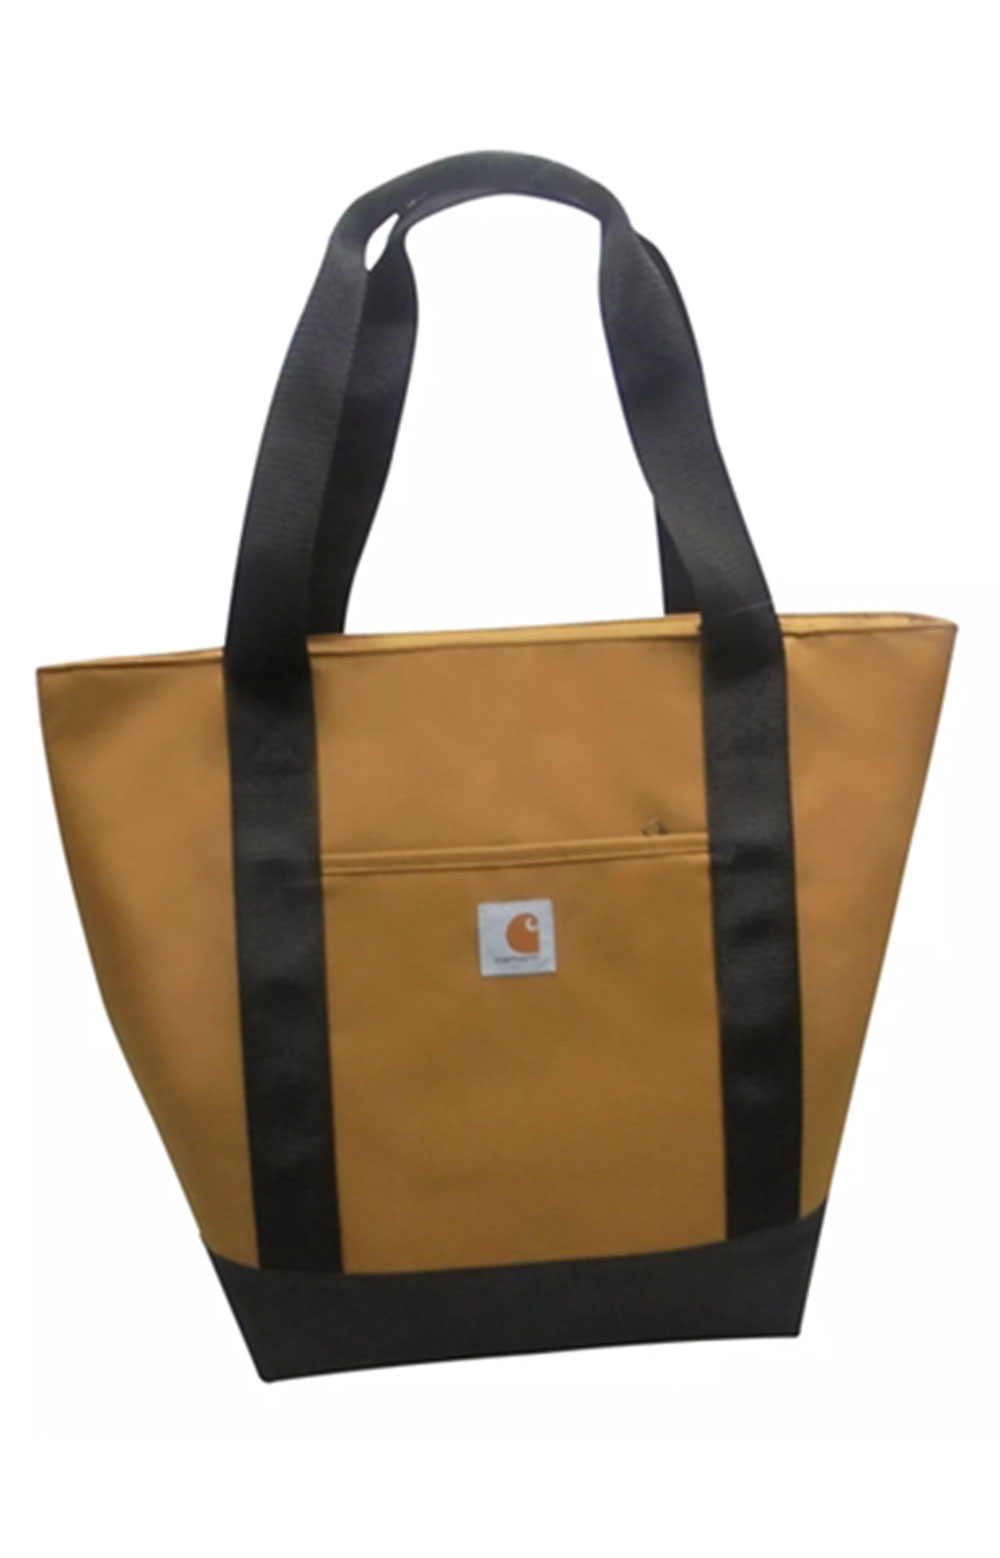 Large Insulated Convertible Tote Bag - Carhartt Brown